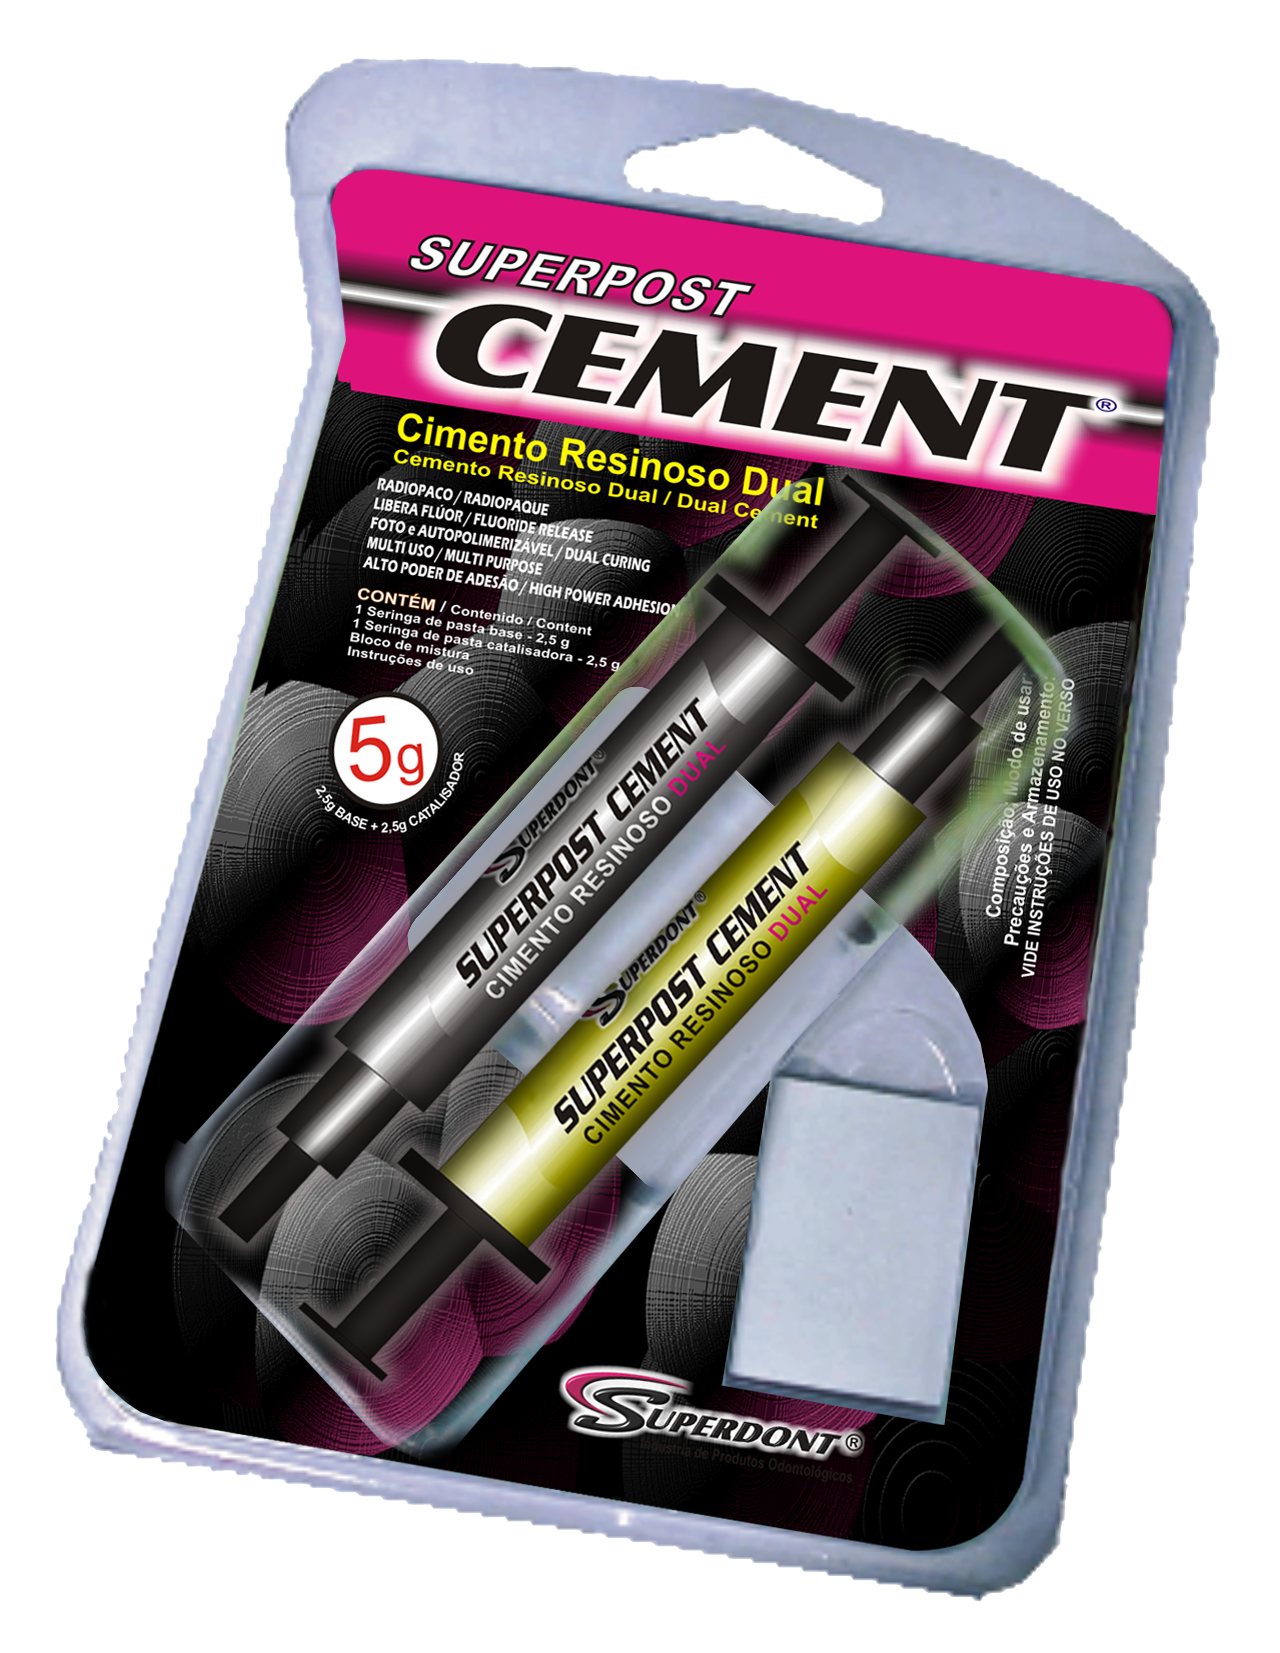 SUPERPOST CEMENT KIT 5g